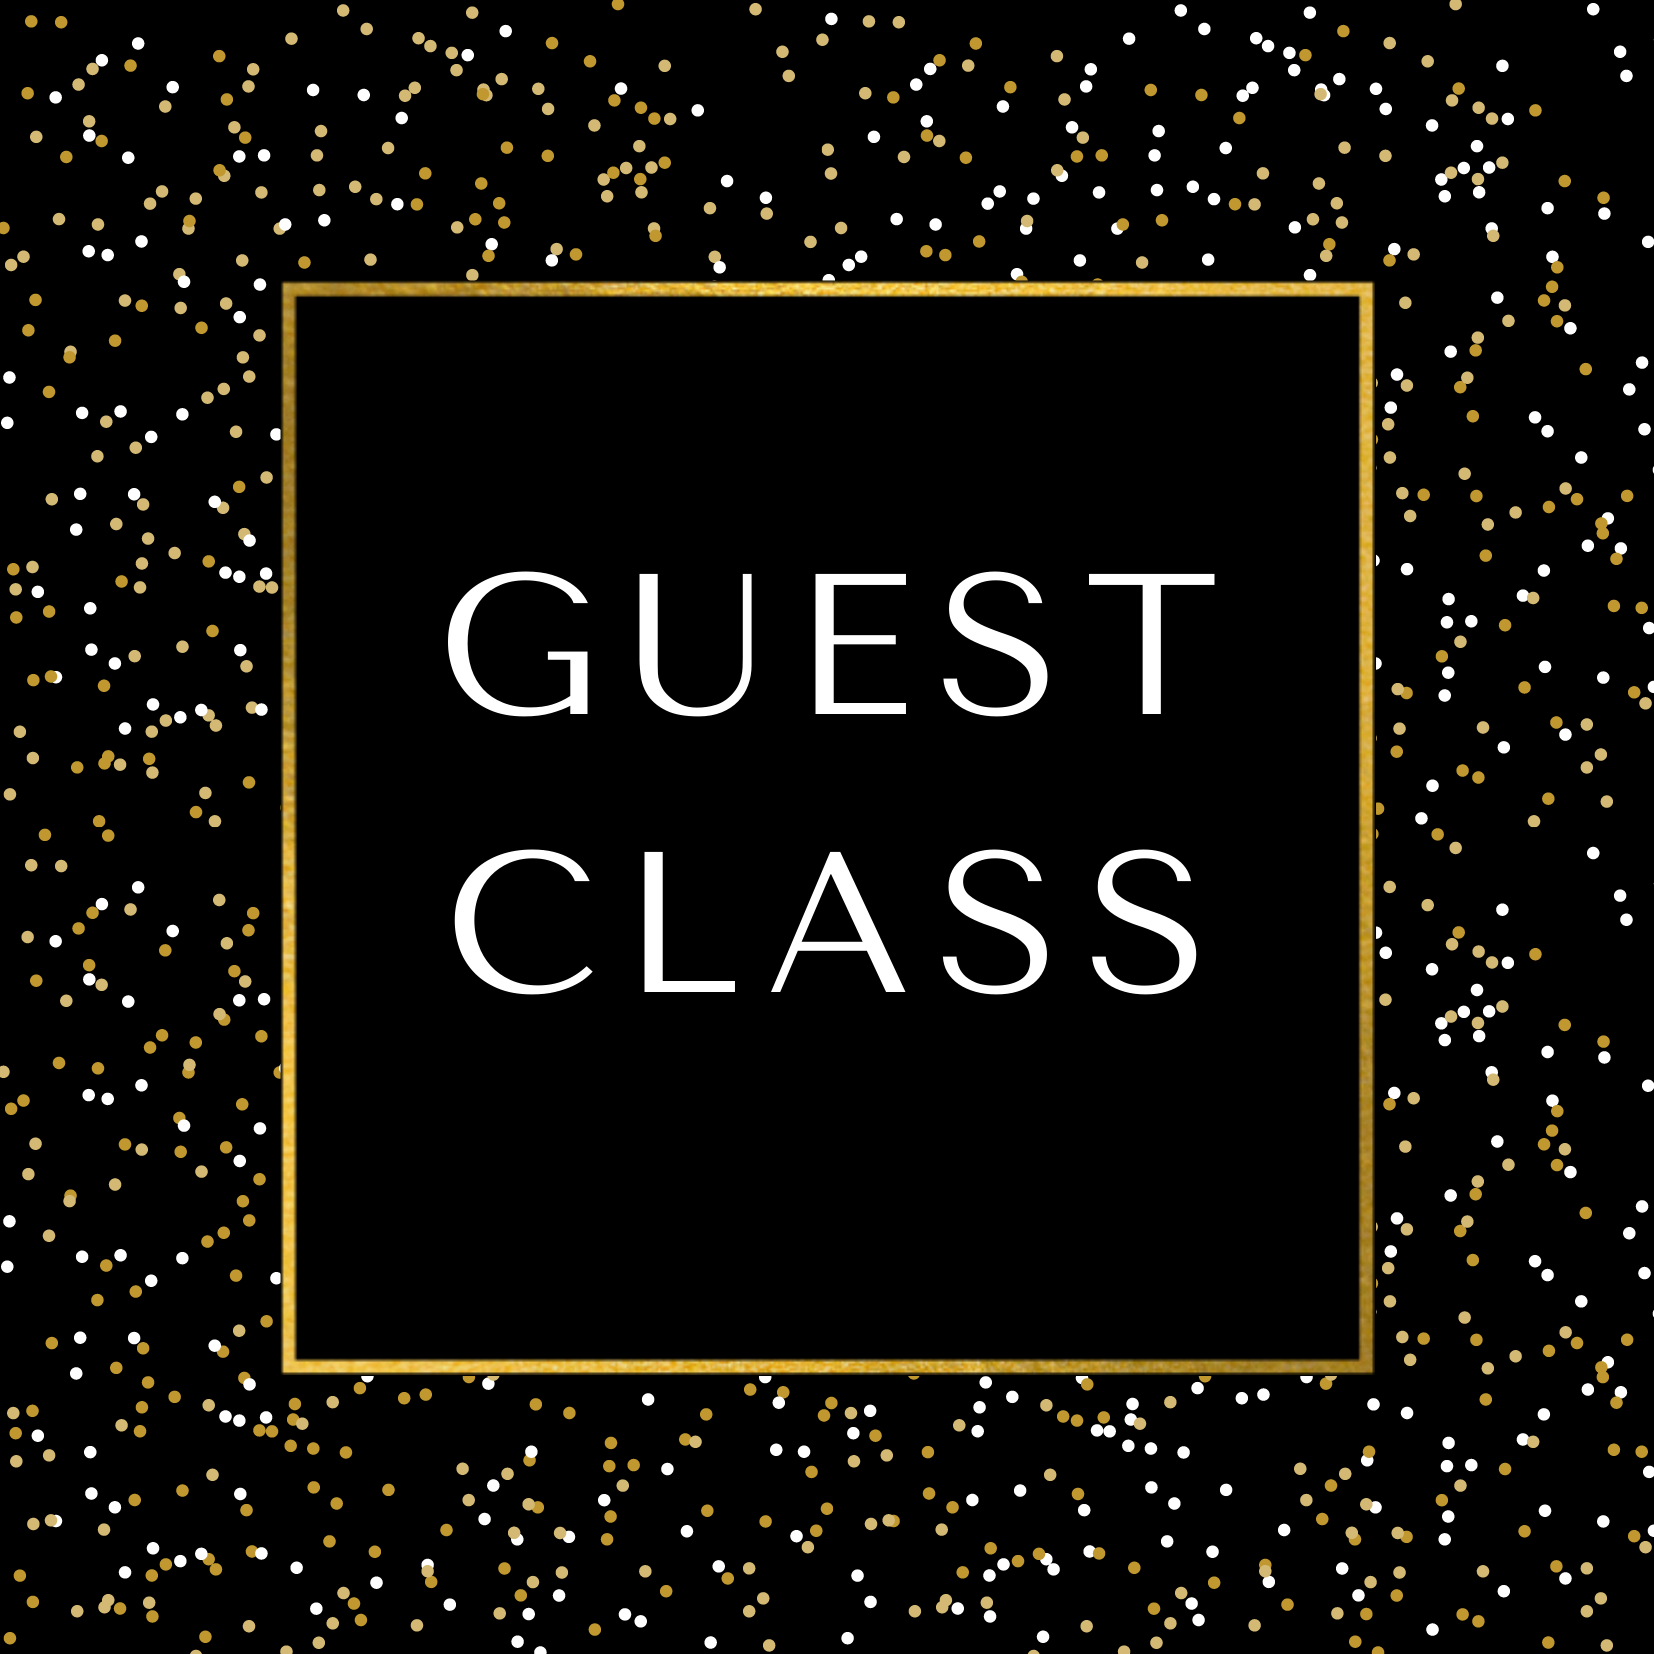 Weekly 'GUEST' Class